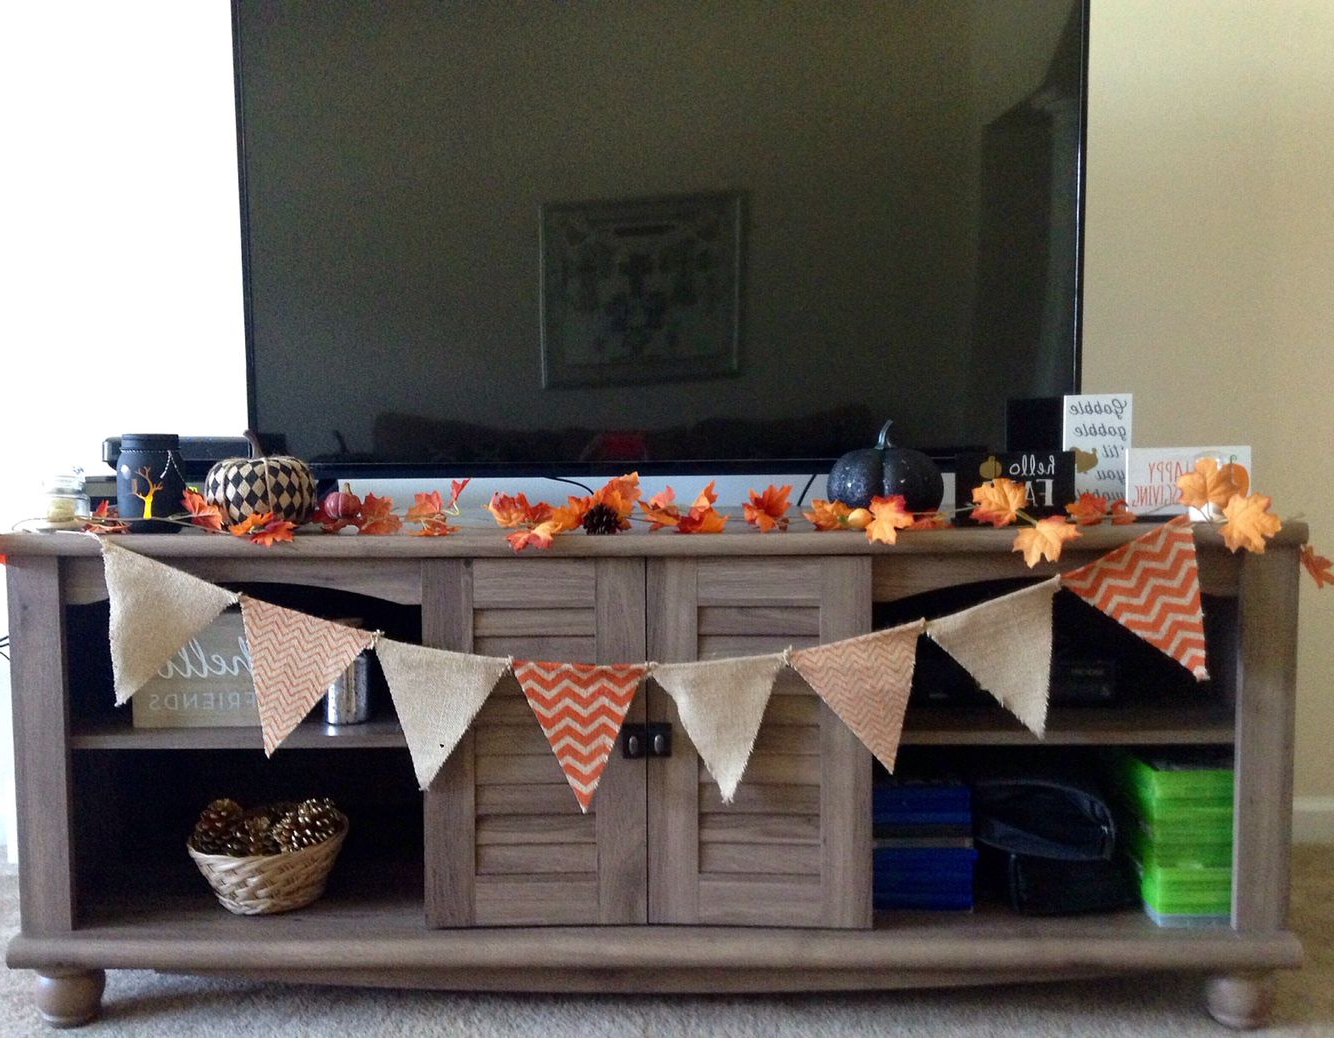 Tv Stand Fall Decor | Autumn | Fall Decor, Fall Home Decor, Decor Intended For Bale 82 Inch Tv Stands (View 19 of 20)